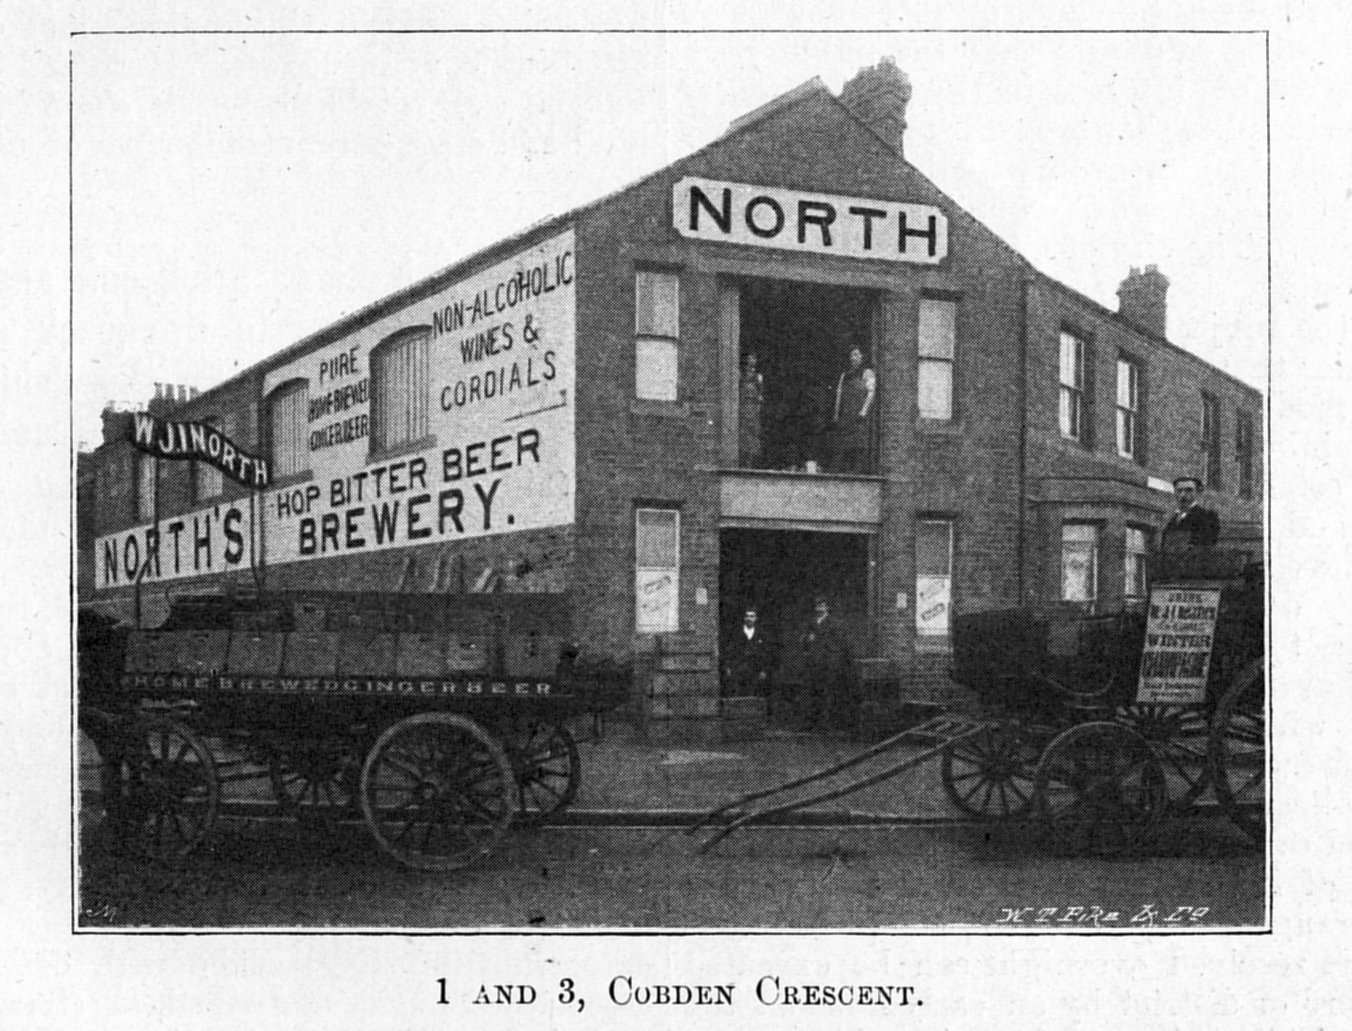 [Cobden Crescent Norths mineral water factory smaller]